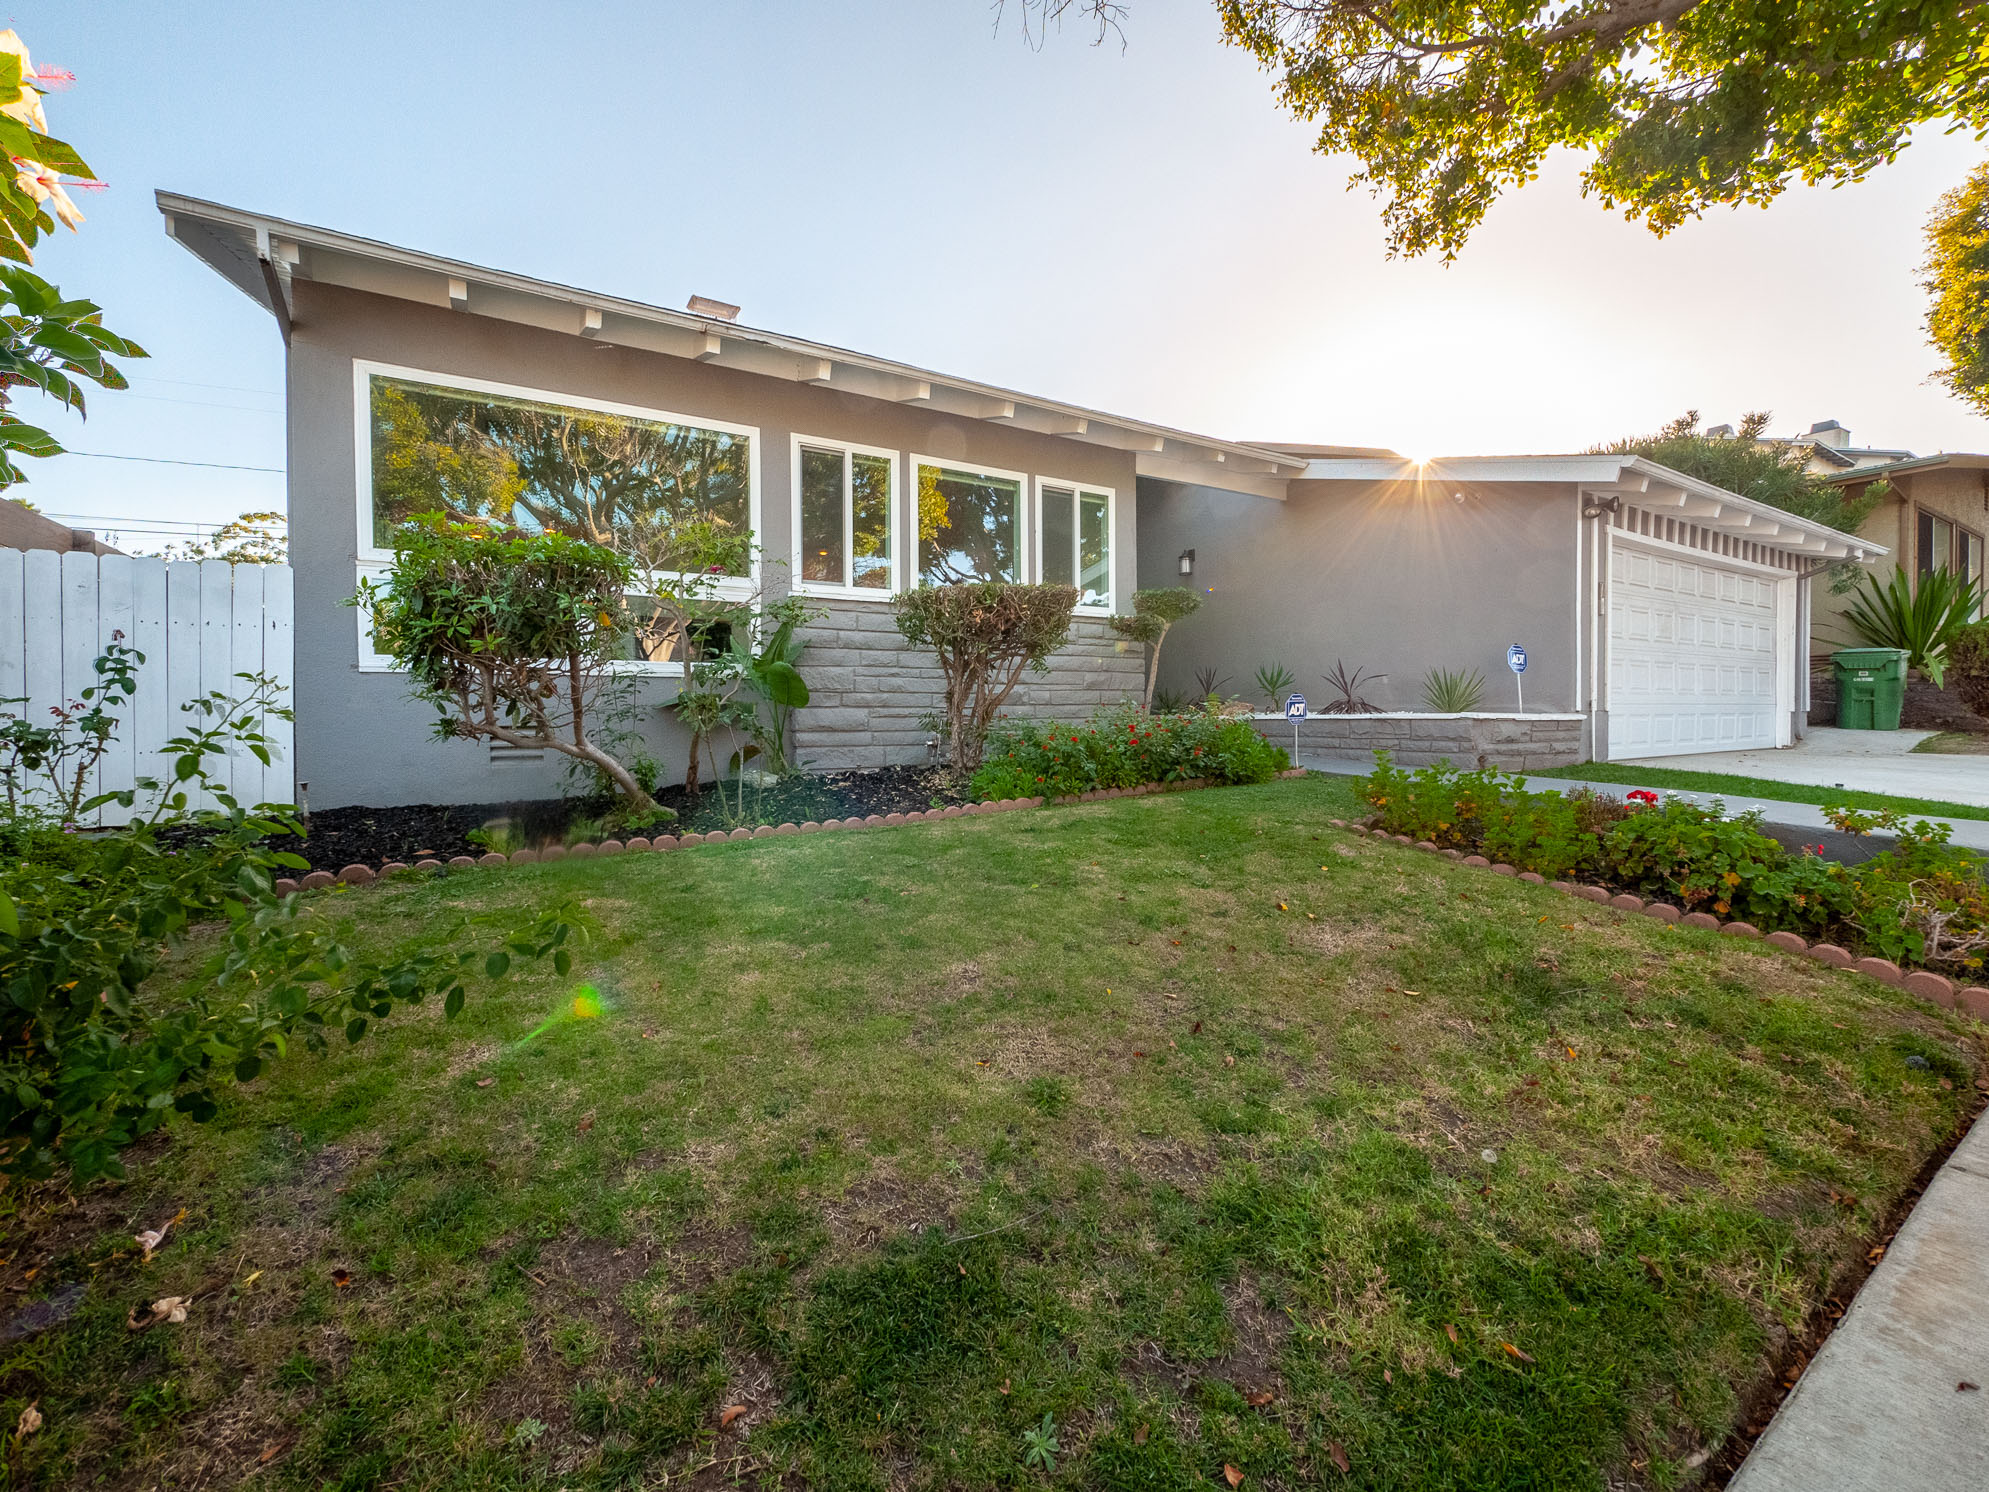 Huge Mid-Century Modern 3B/1.5B + Bonus Room House perfect for the elegant entertainer and outdoor lover-open floor plan-outdoor kitchen-garage-awesome location!